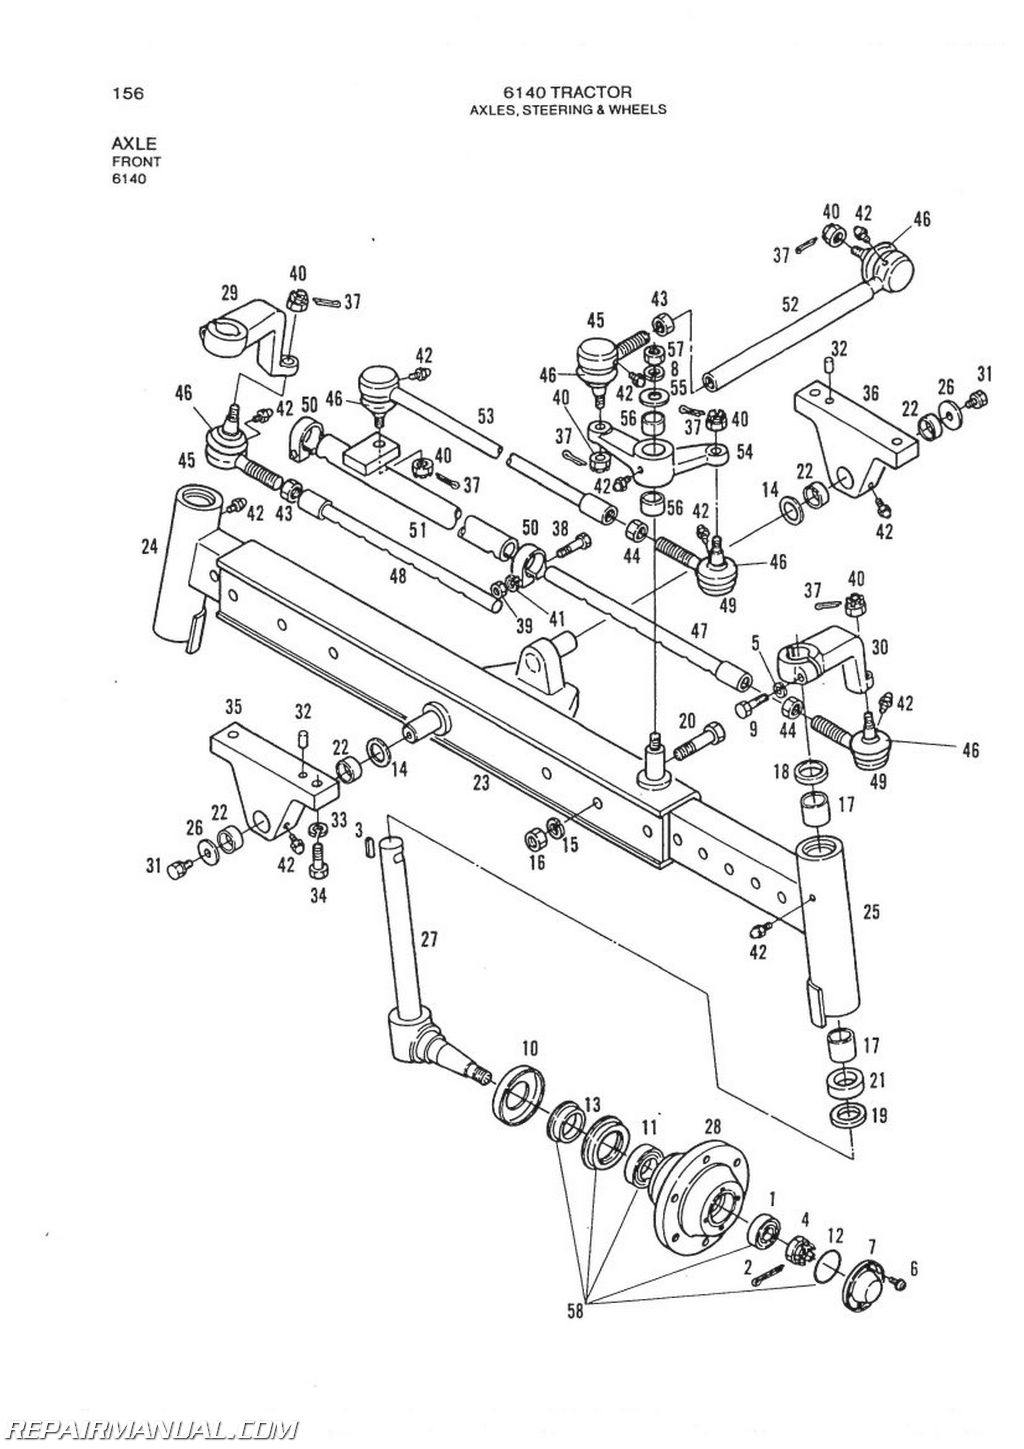 Wiring Diagram For Allis Chalmers B